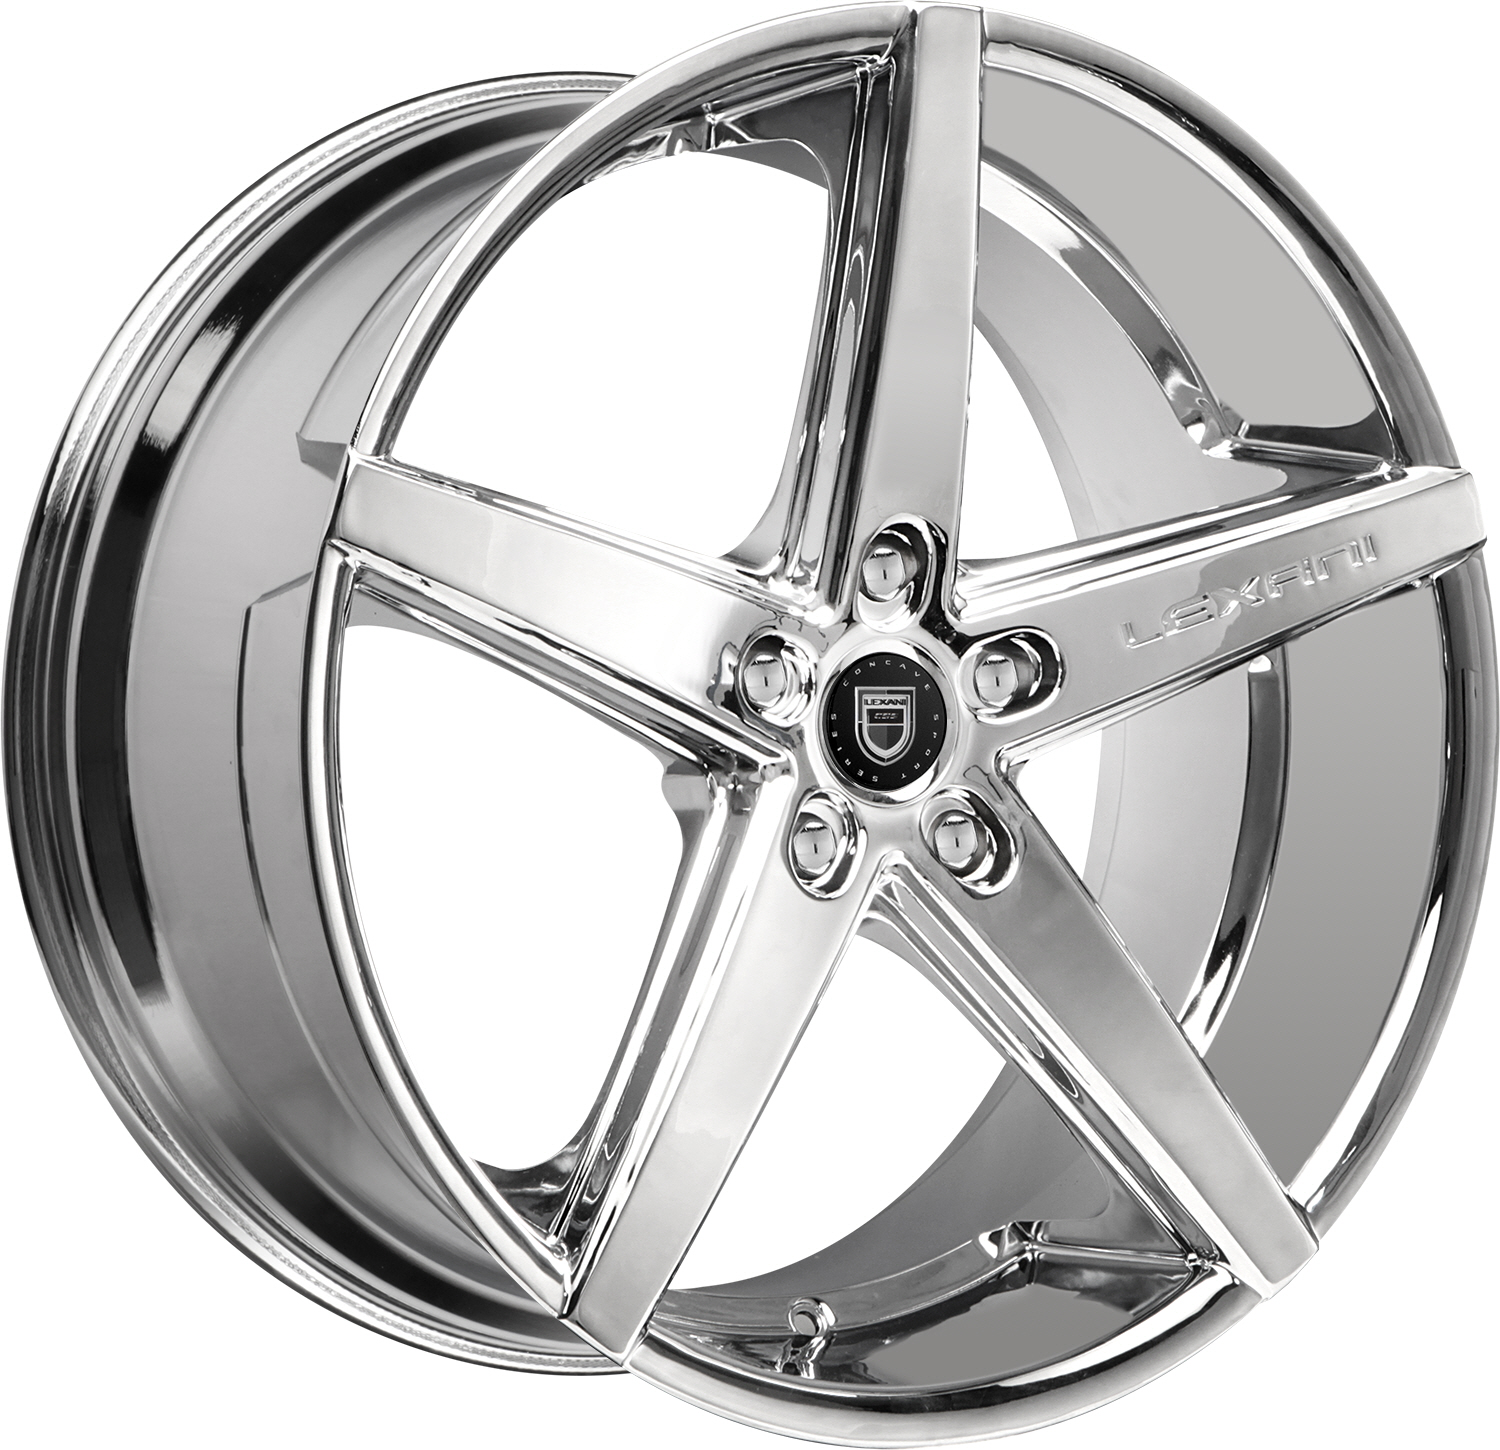 R-FOUR  WHEELS AND RIMS PACKAGES